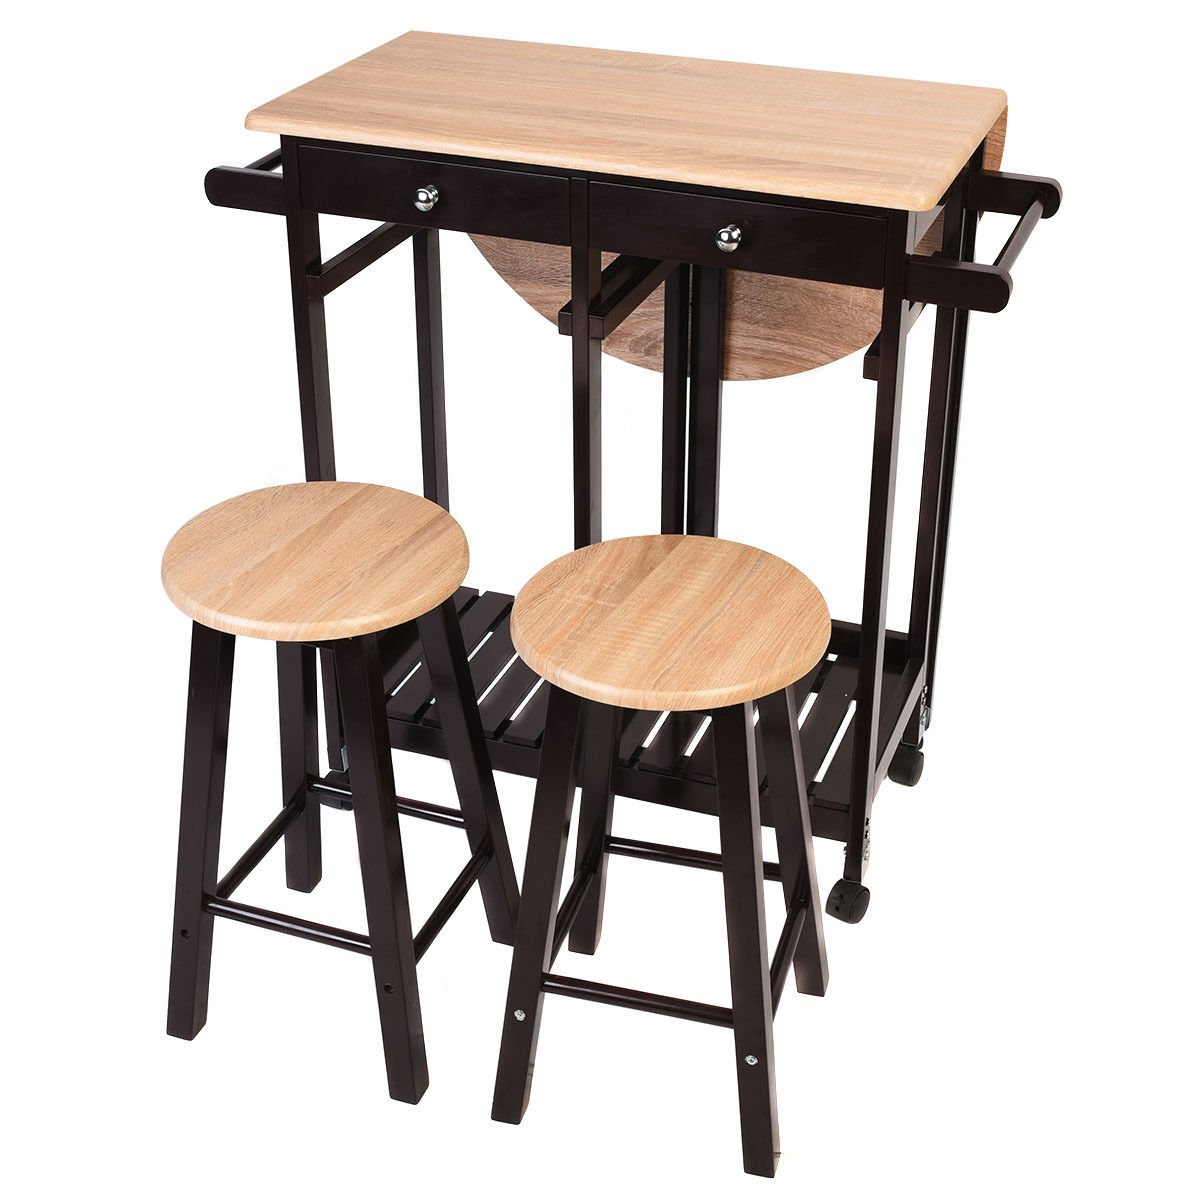 Honesty 3PC Wood Kitchen Island Rolling Cart Set Dinning Drop Leaf Table w/2 Stools